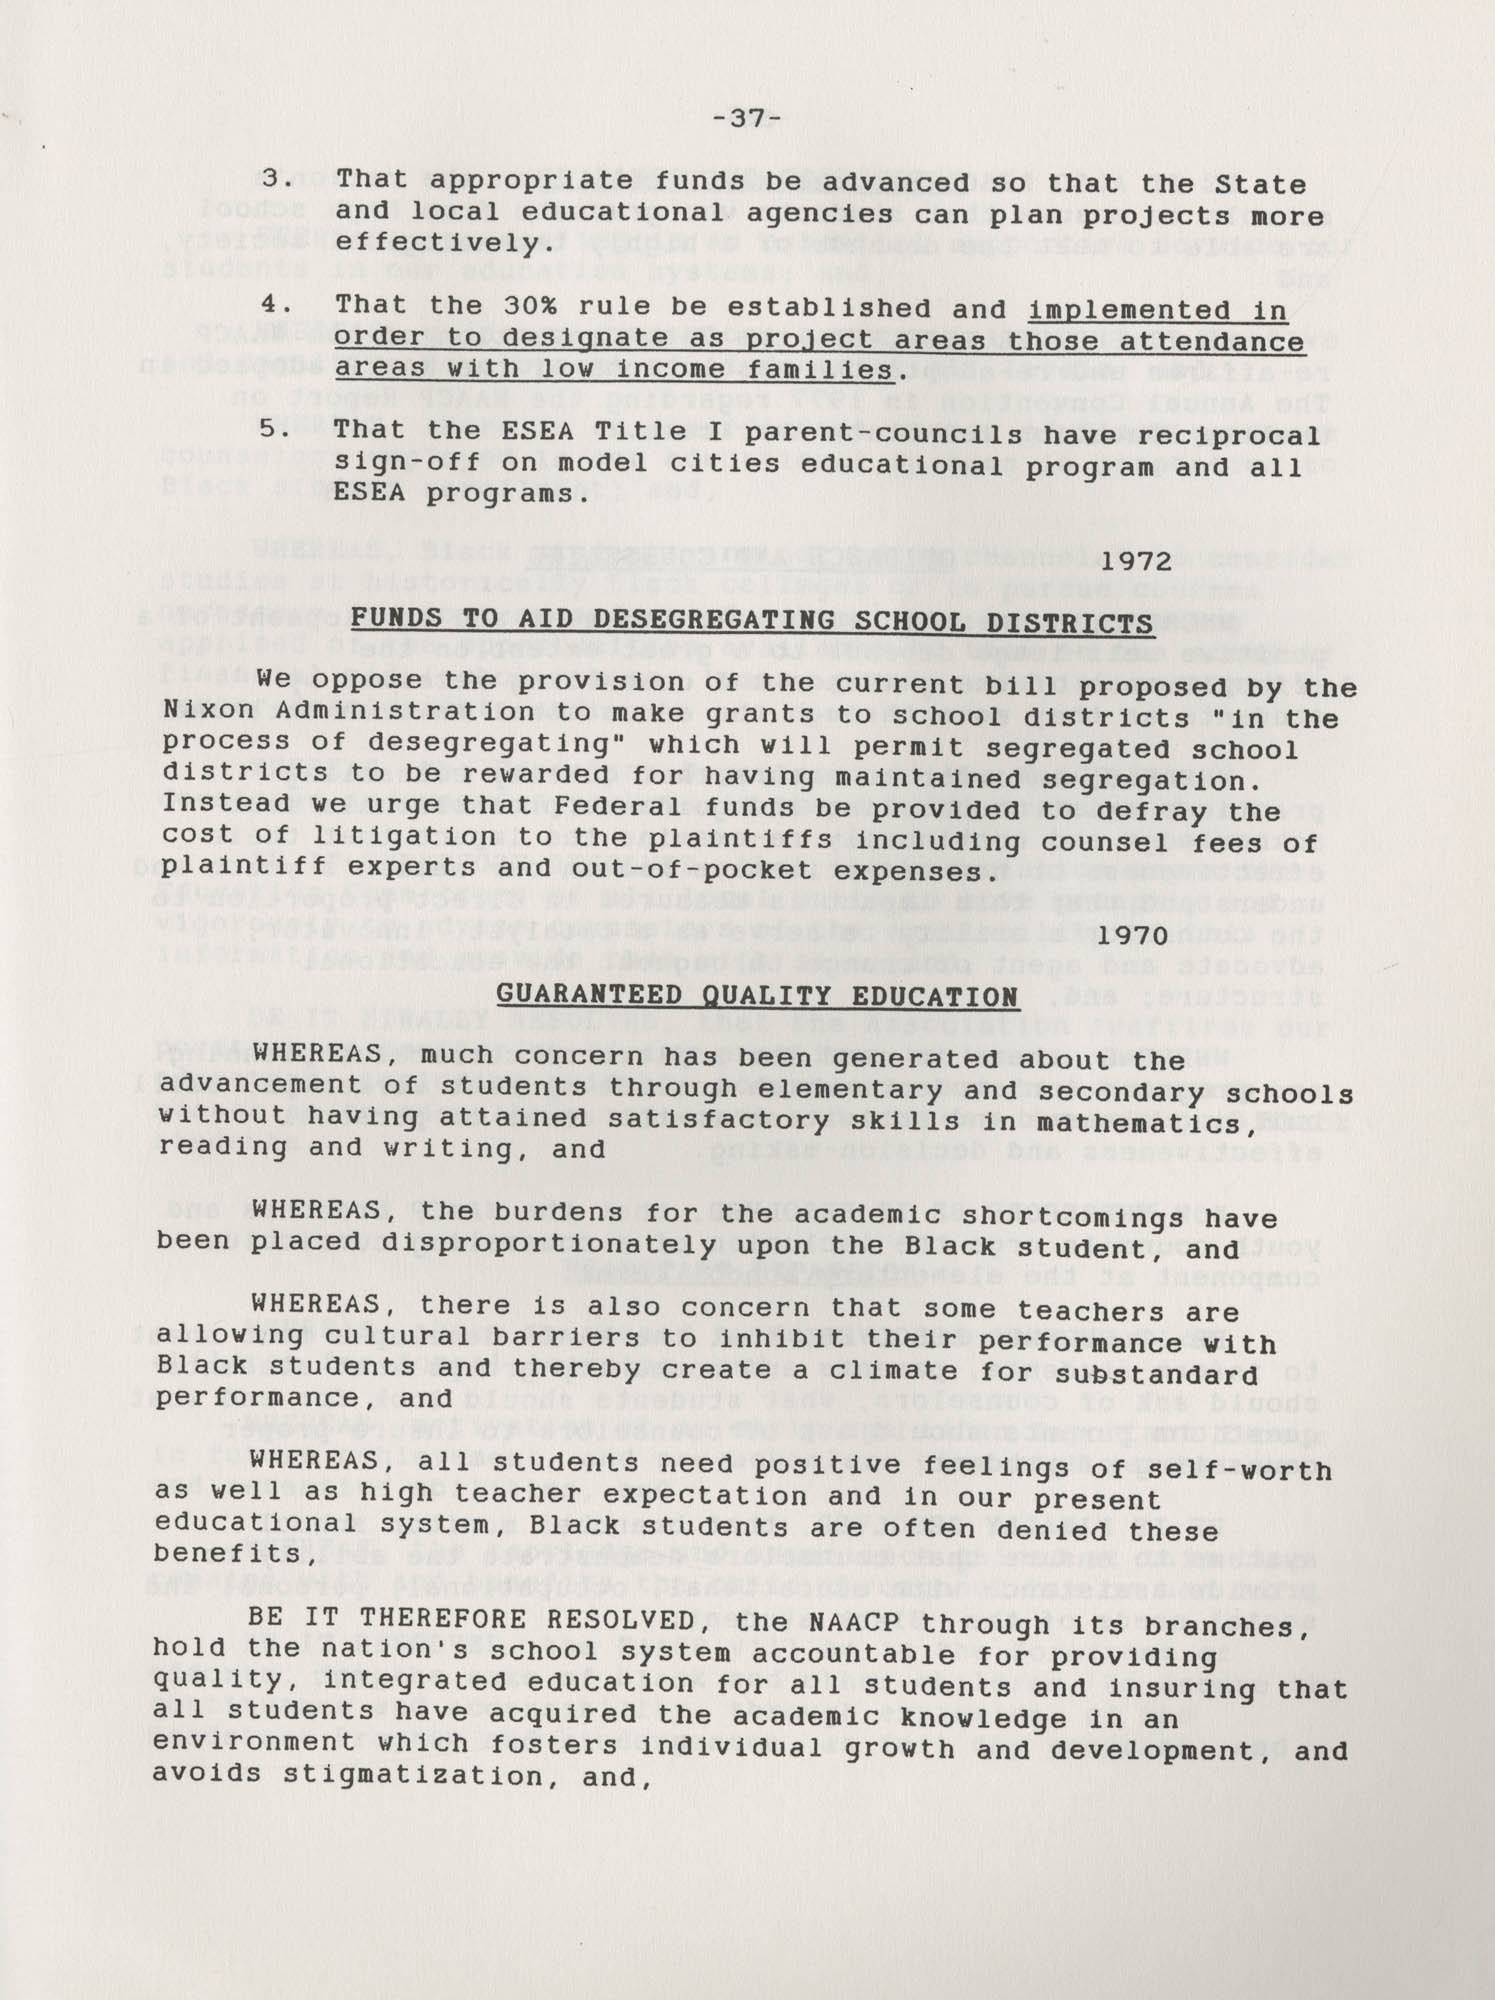 NAACP Resolutions on Education, 1970-1989, Index to Education Resolutions, Page 37